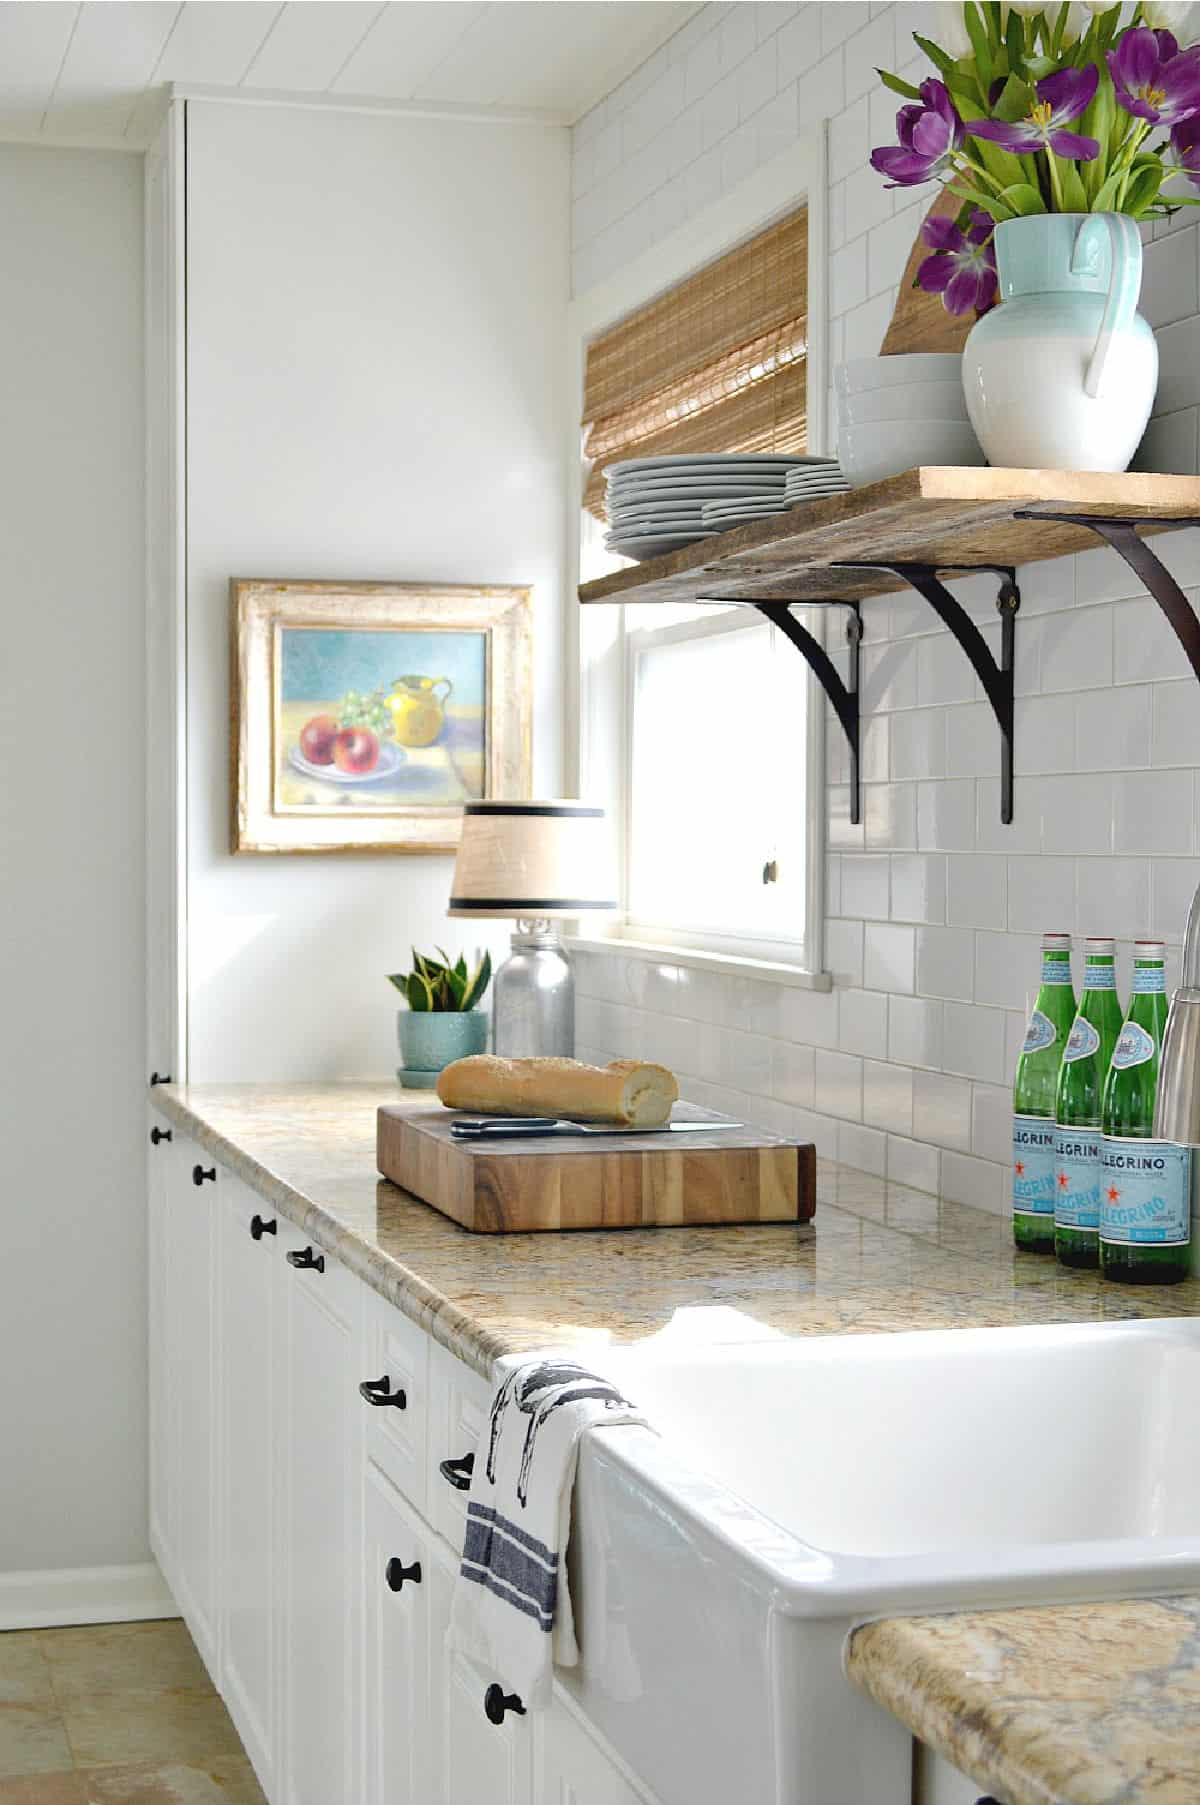 galley kitchen cabinets painted white with granite countertops